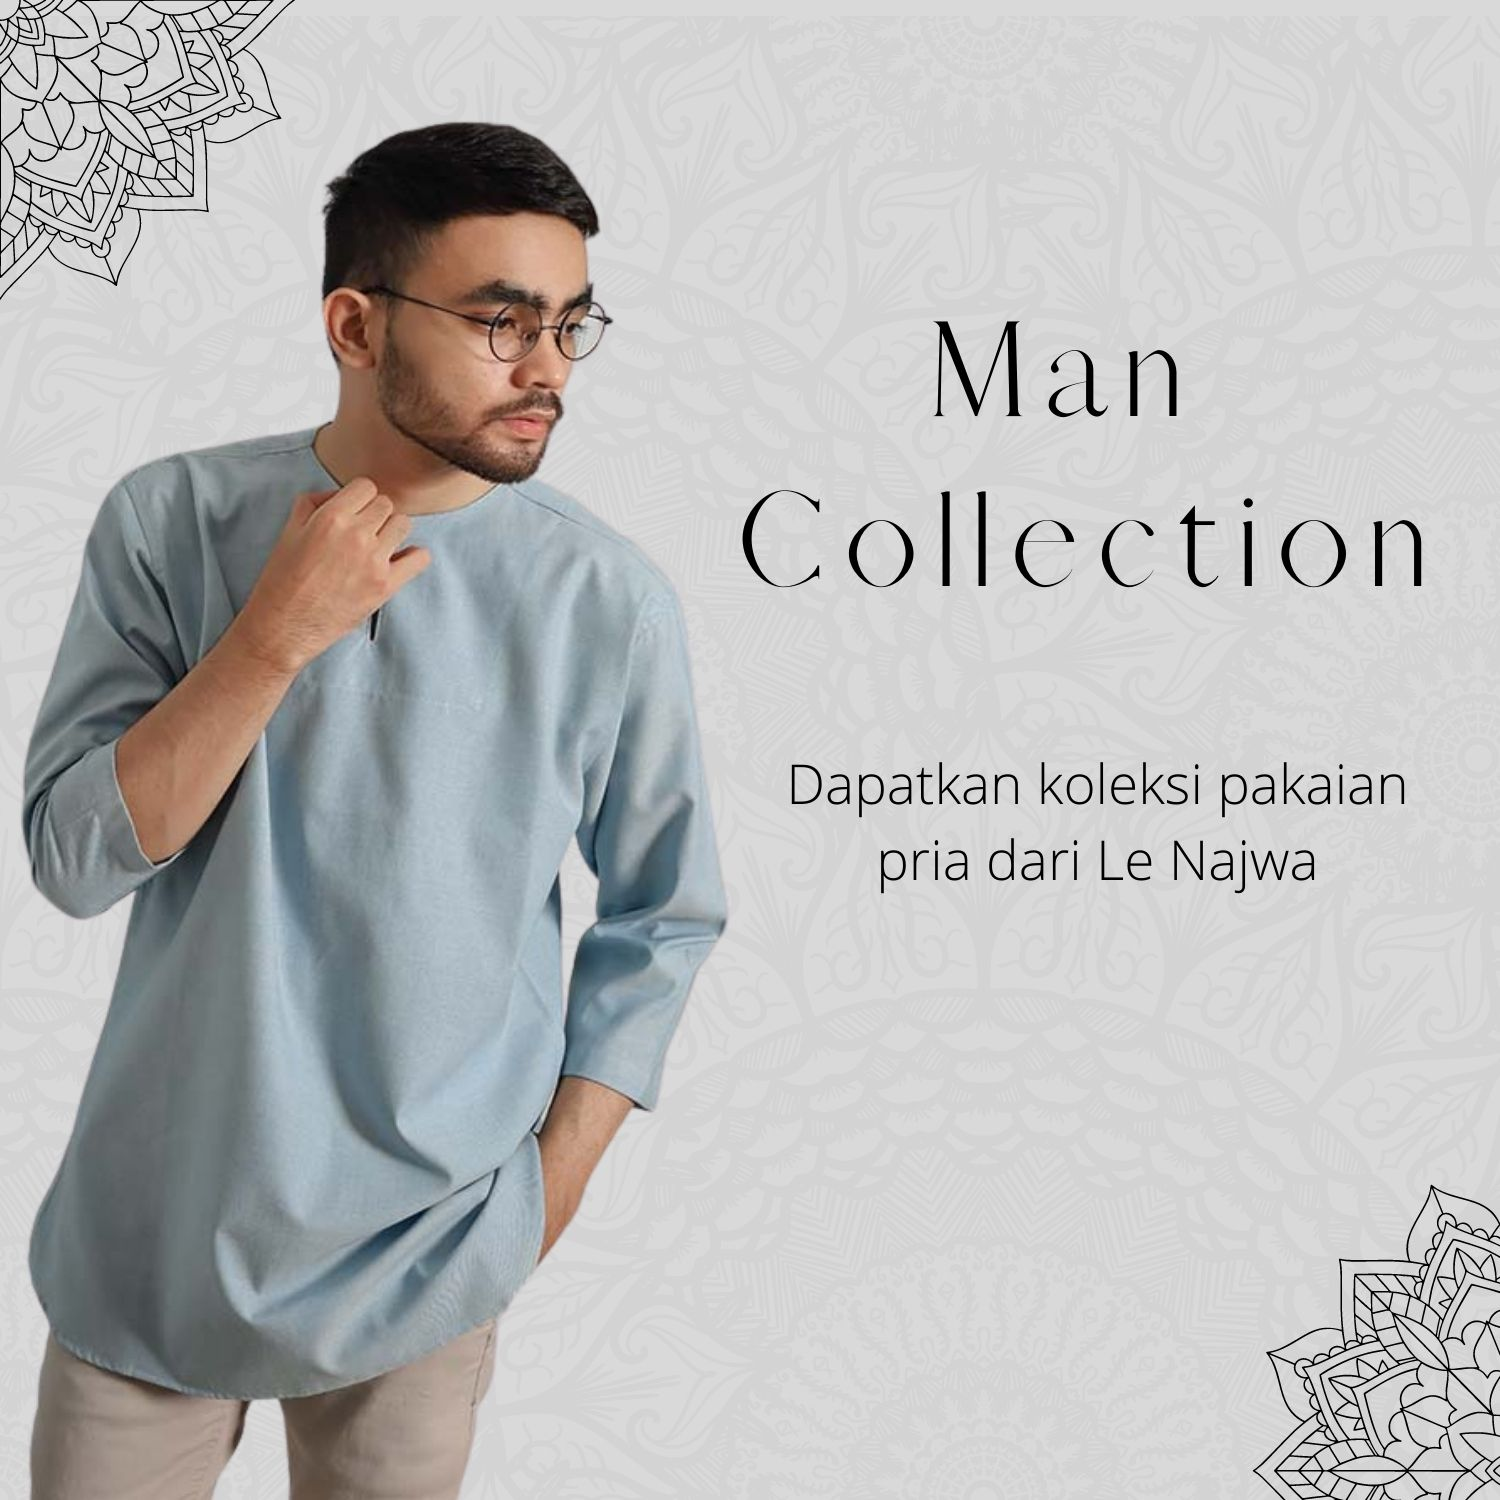 Man Colection